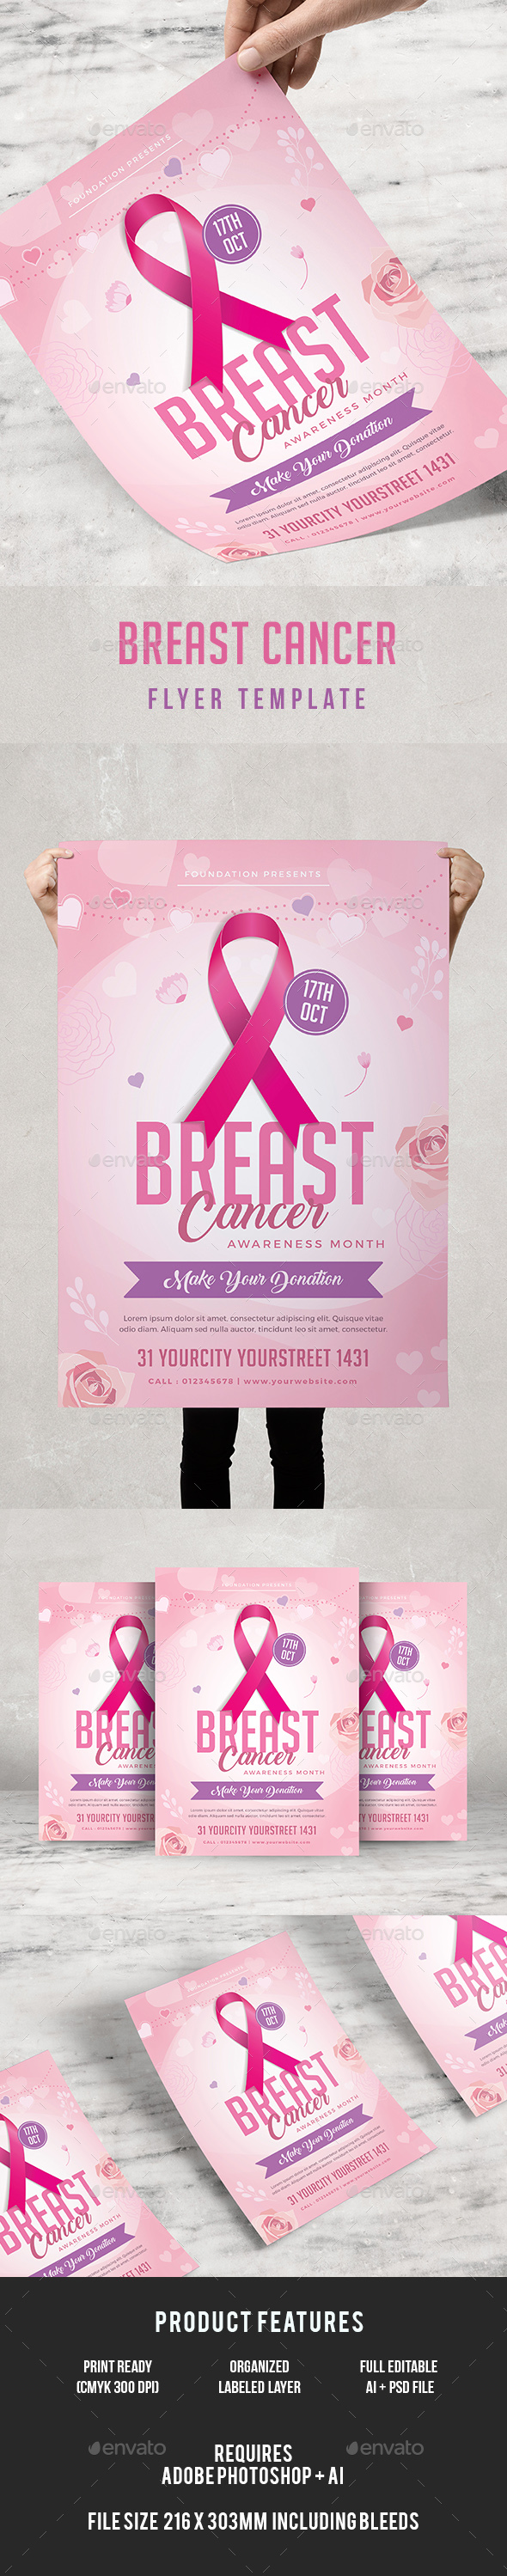 Breast Cancer Awareness Flyer - Events Flyers